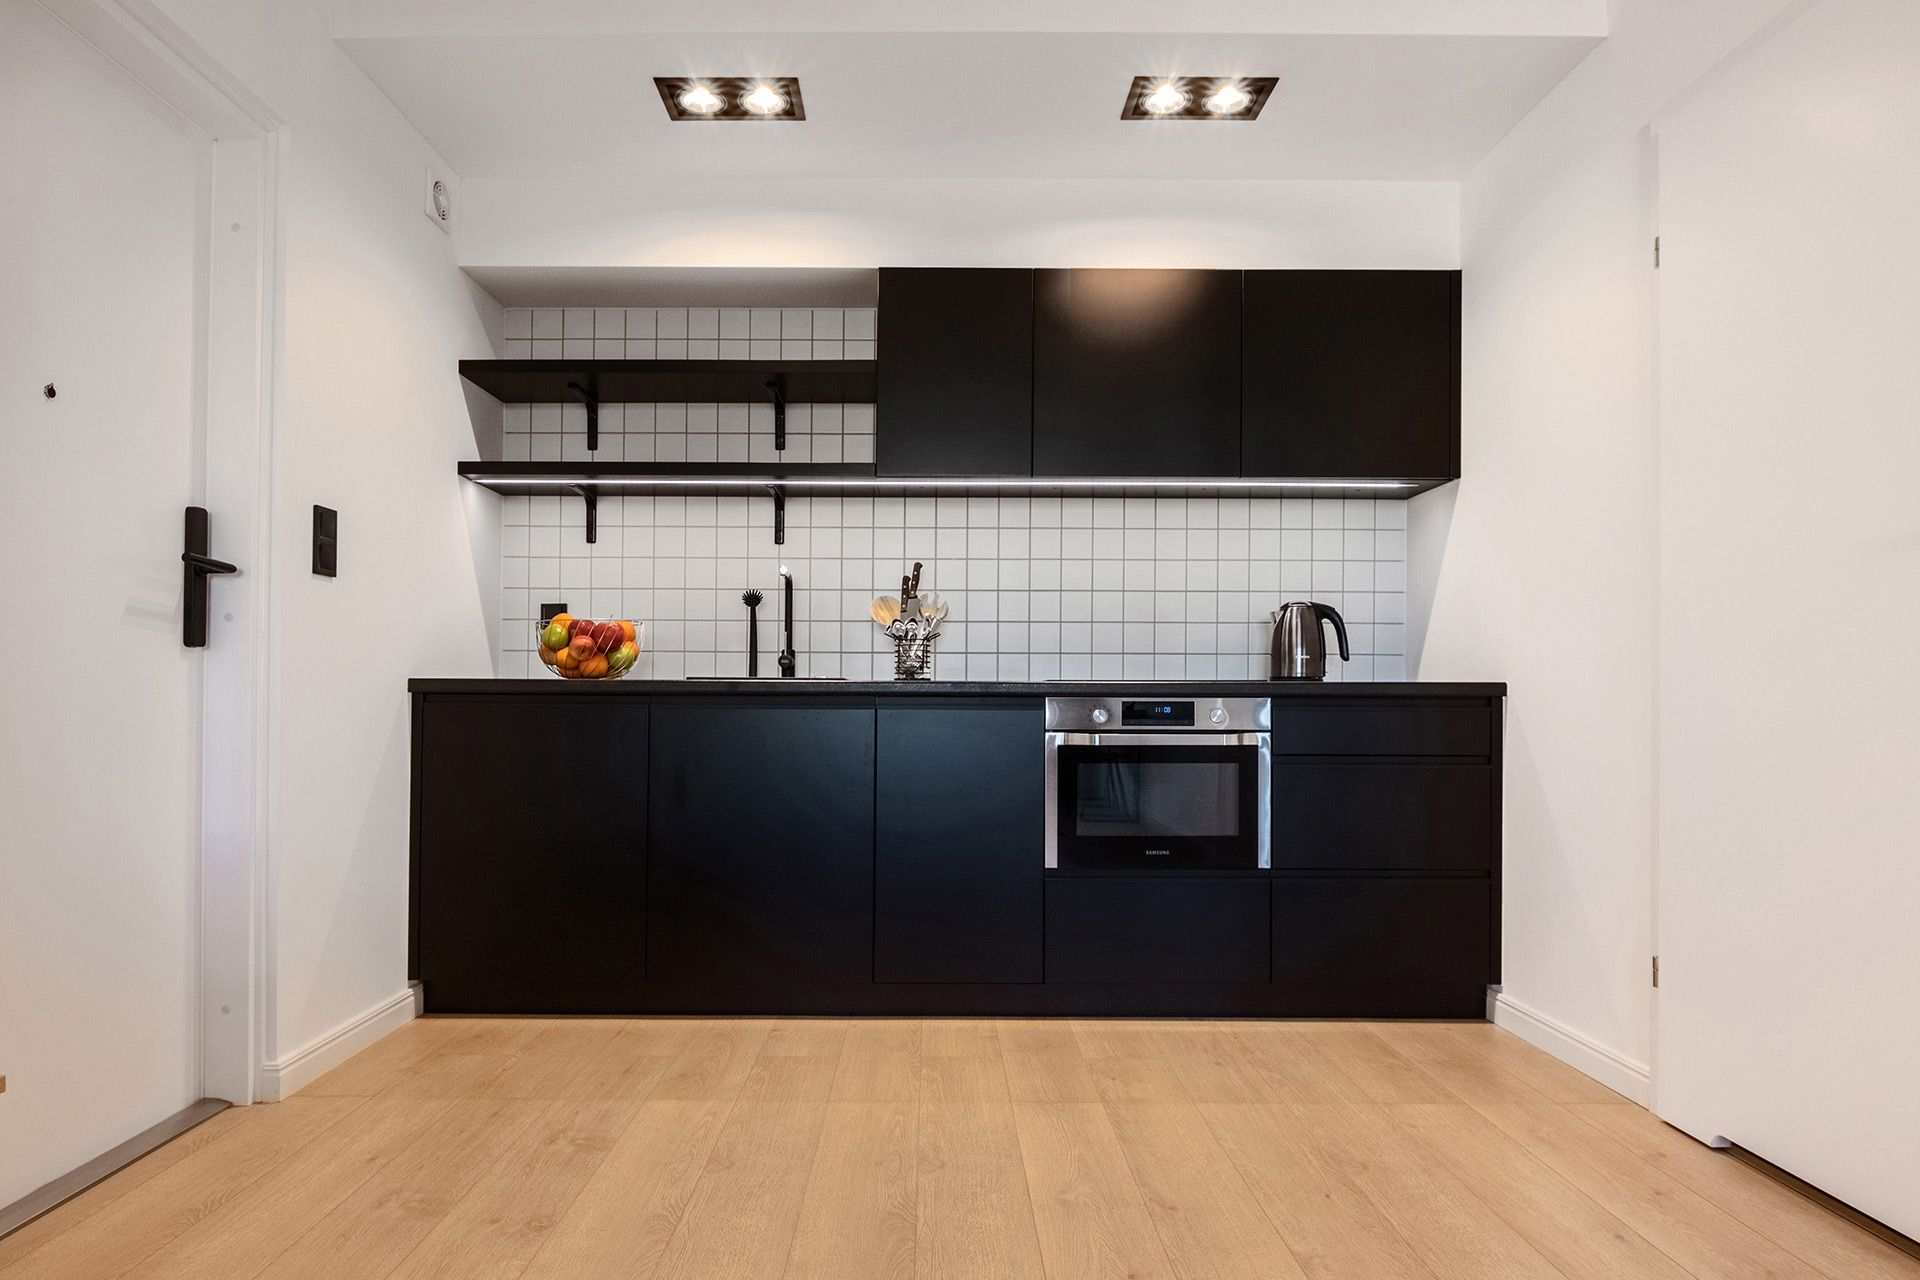 1 Bedroom - Medium apartment to rent in Warsaw UPR-A-057-1